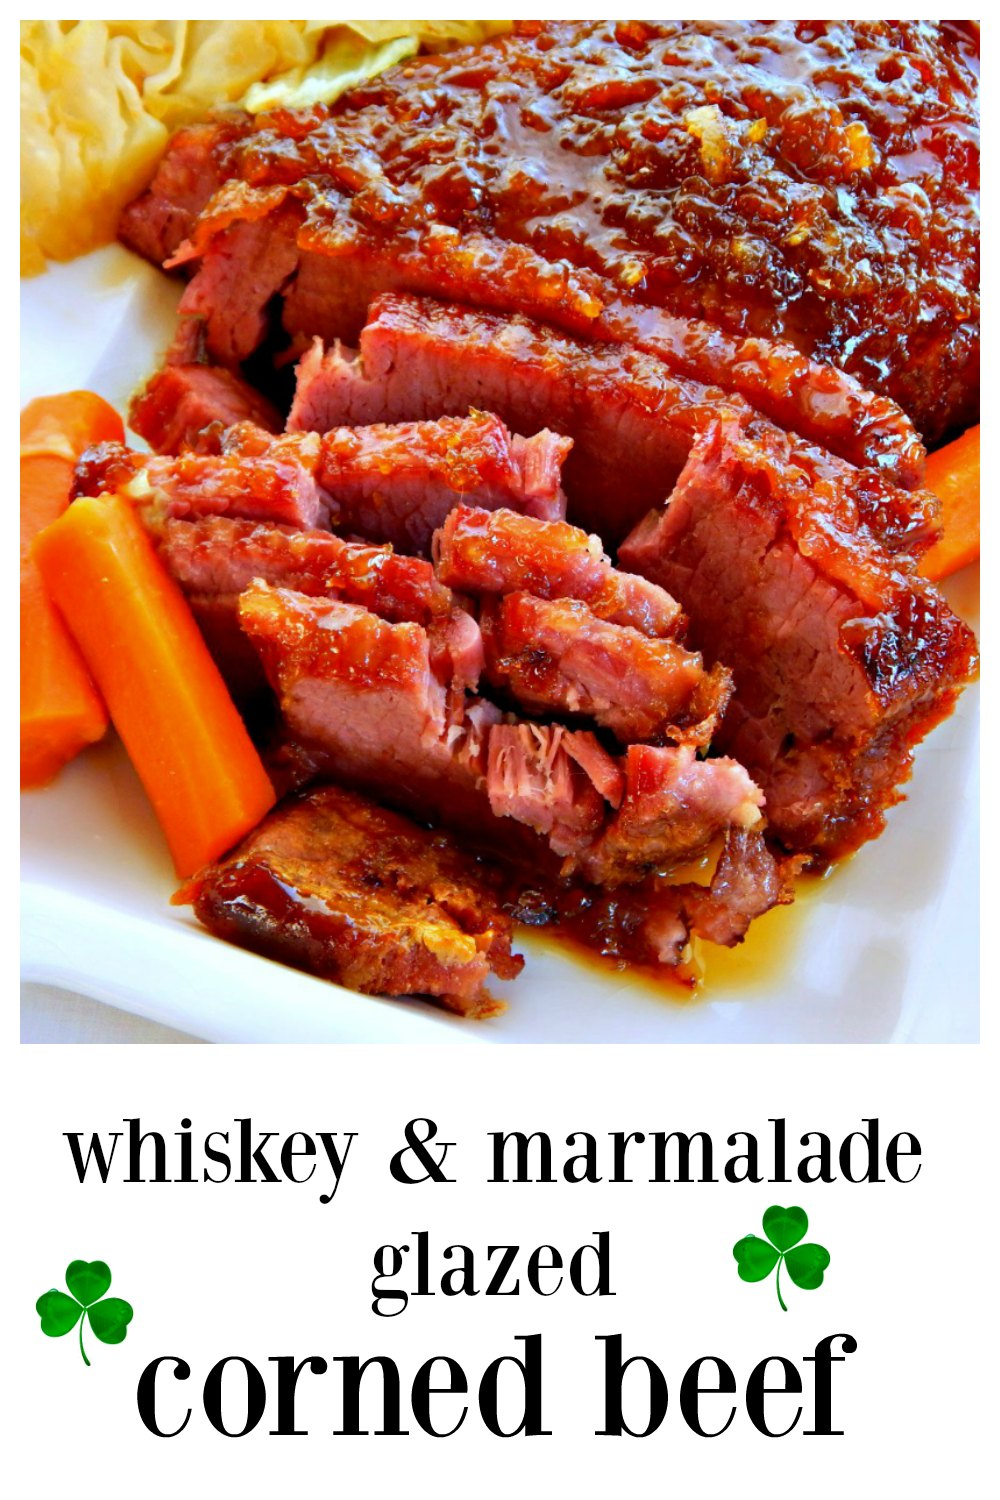 Break out from your rut and try this marvelous Whiskey & Marmalade Glazed Corned Beef adapted from the old Silver Palate Cookbooks. #CornedBeef #SilverPalateCornedBeef #WhiskeyGlazedCornedBeef #WhiskeyMarmaladeGlazedCornedBeef #IrishRecipes #StPaddysDayRecipes #StPatricksDayRecipes